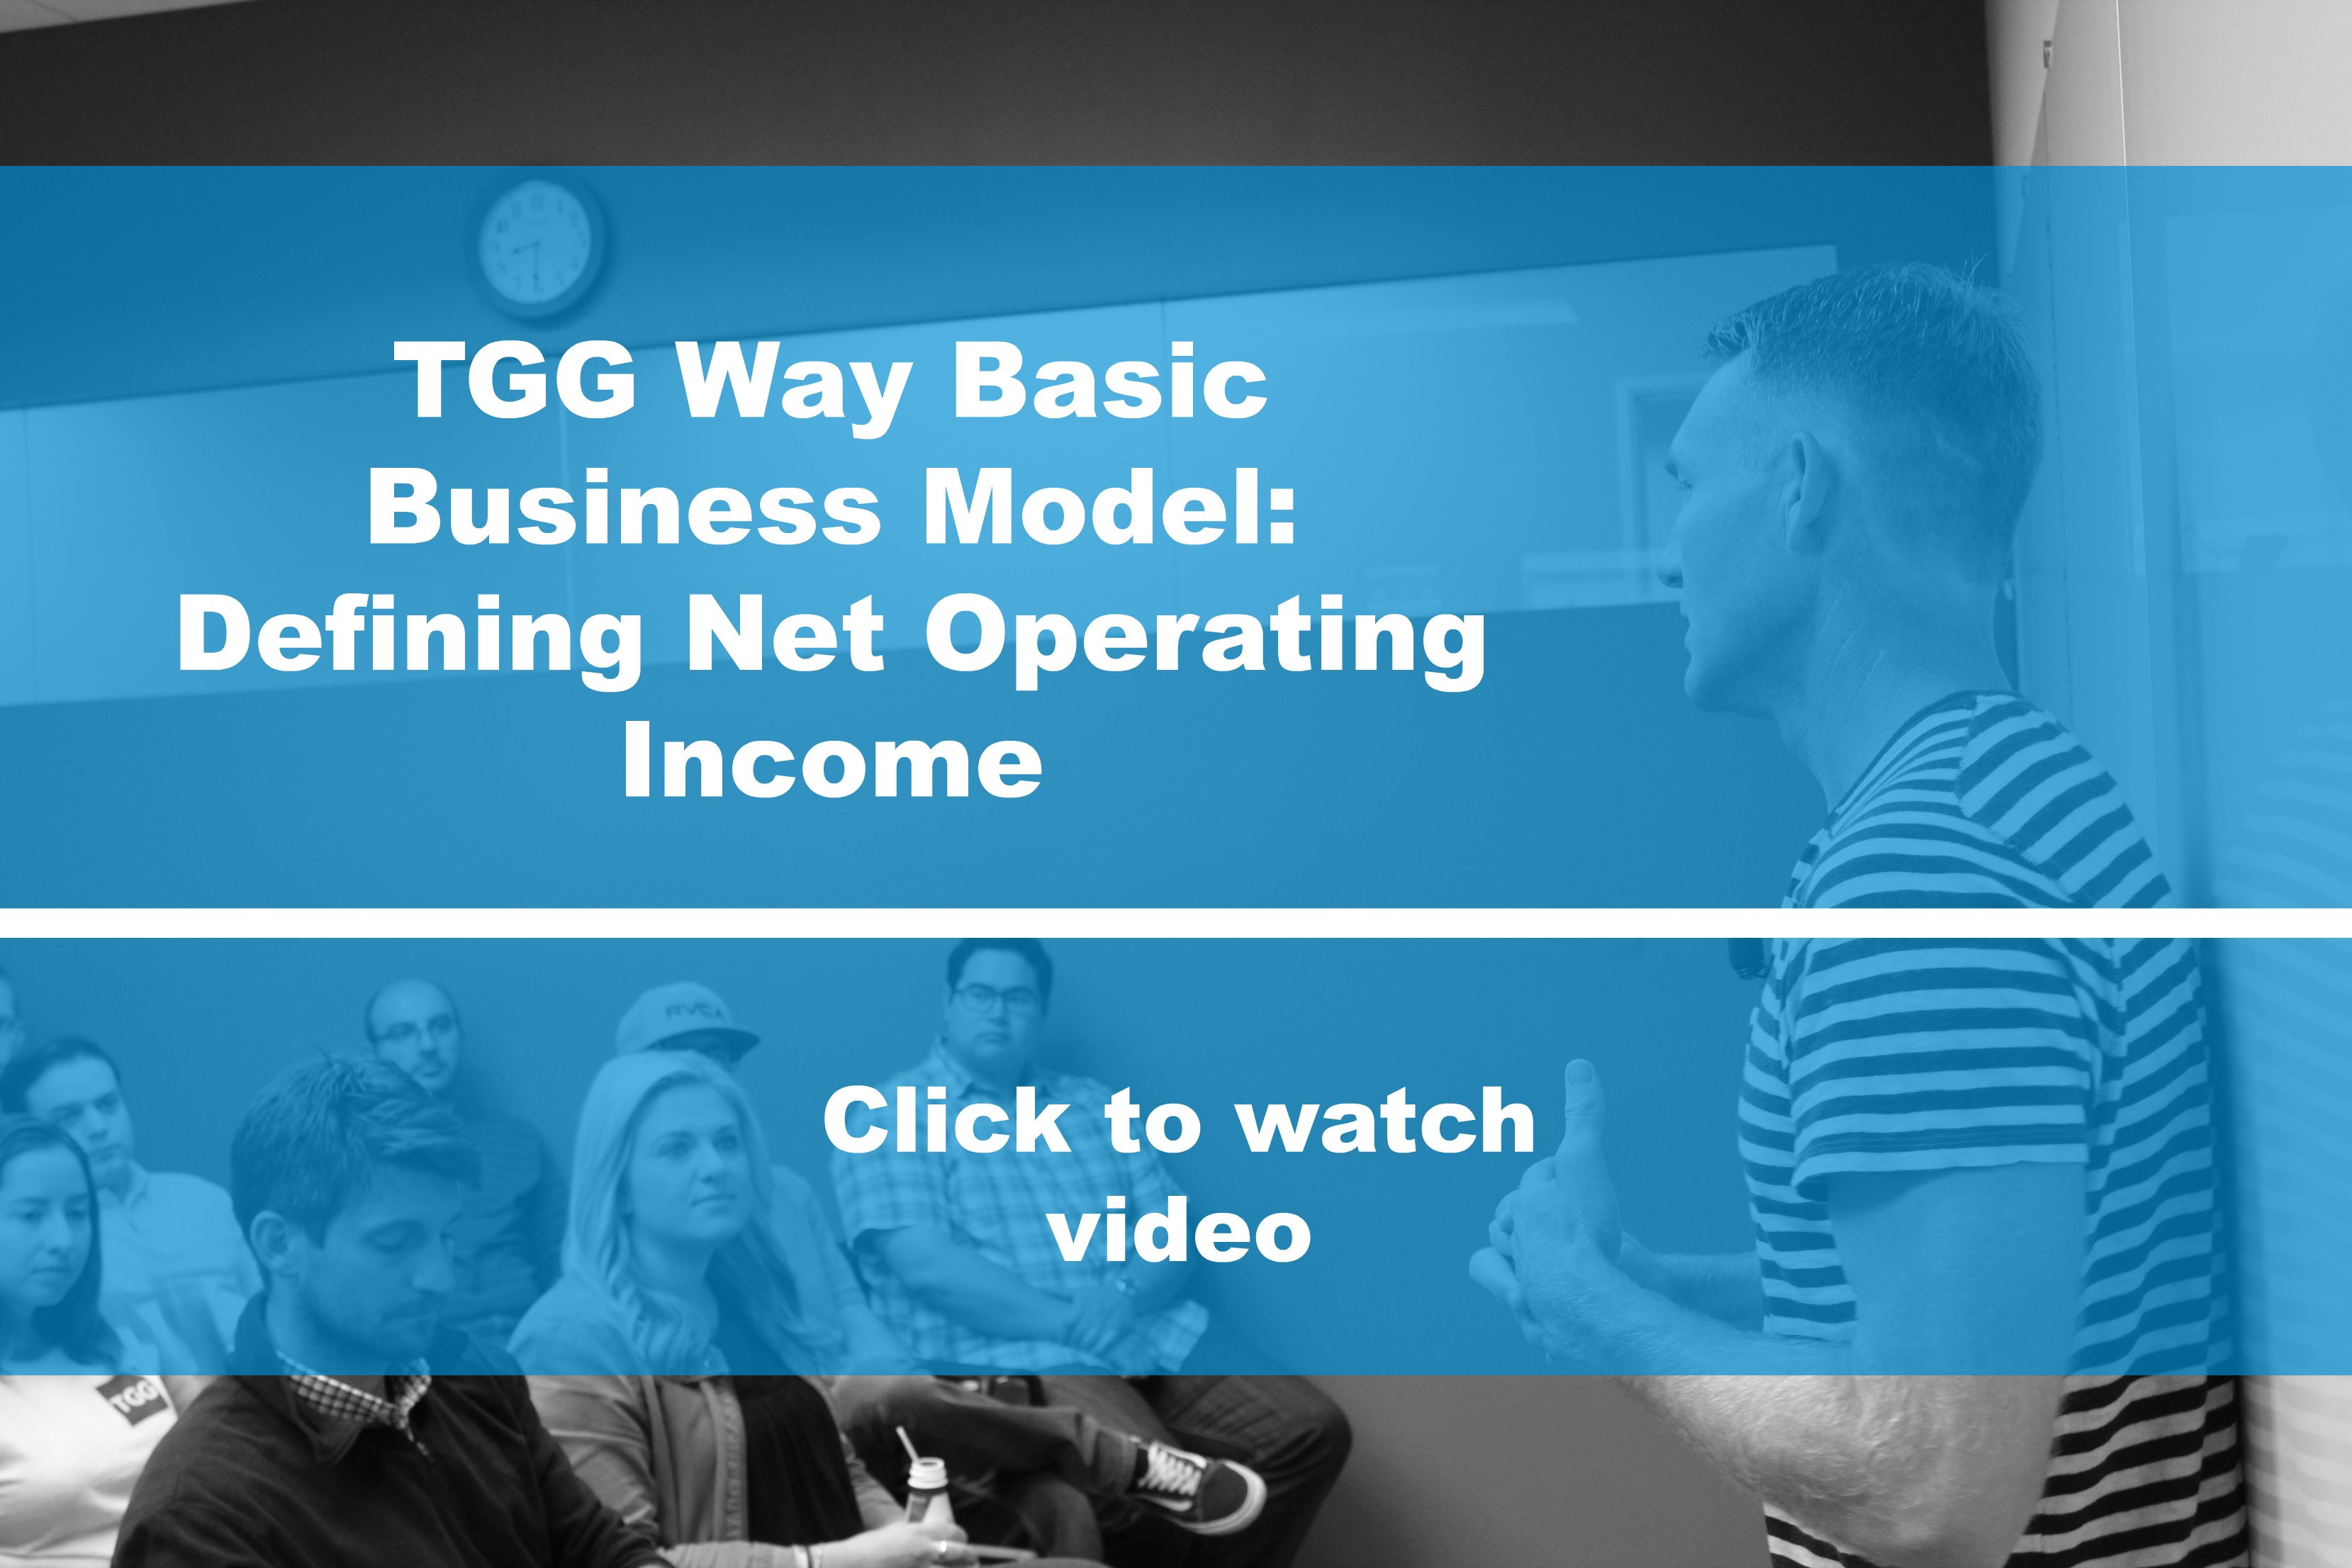 TGG Business Model: Defining Net Operating Income